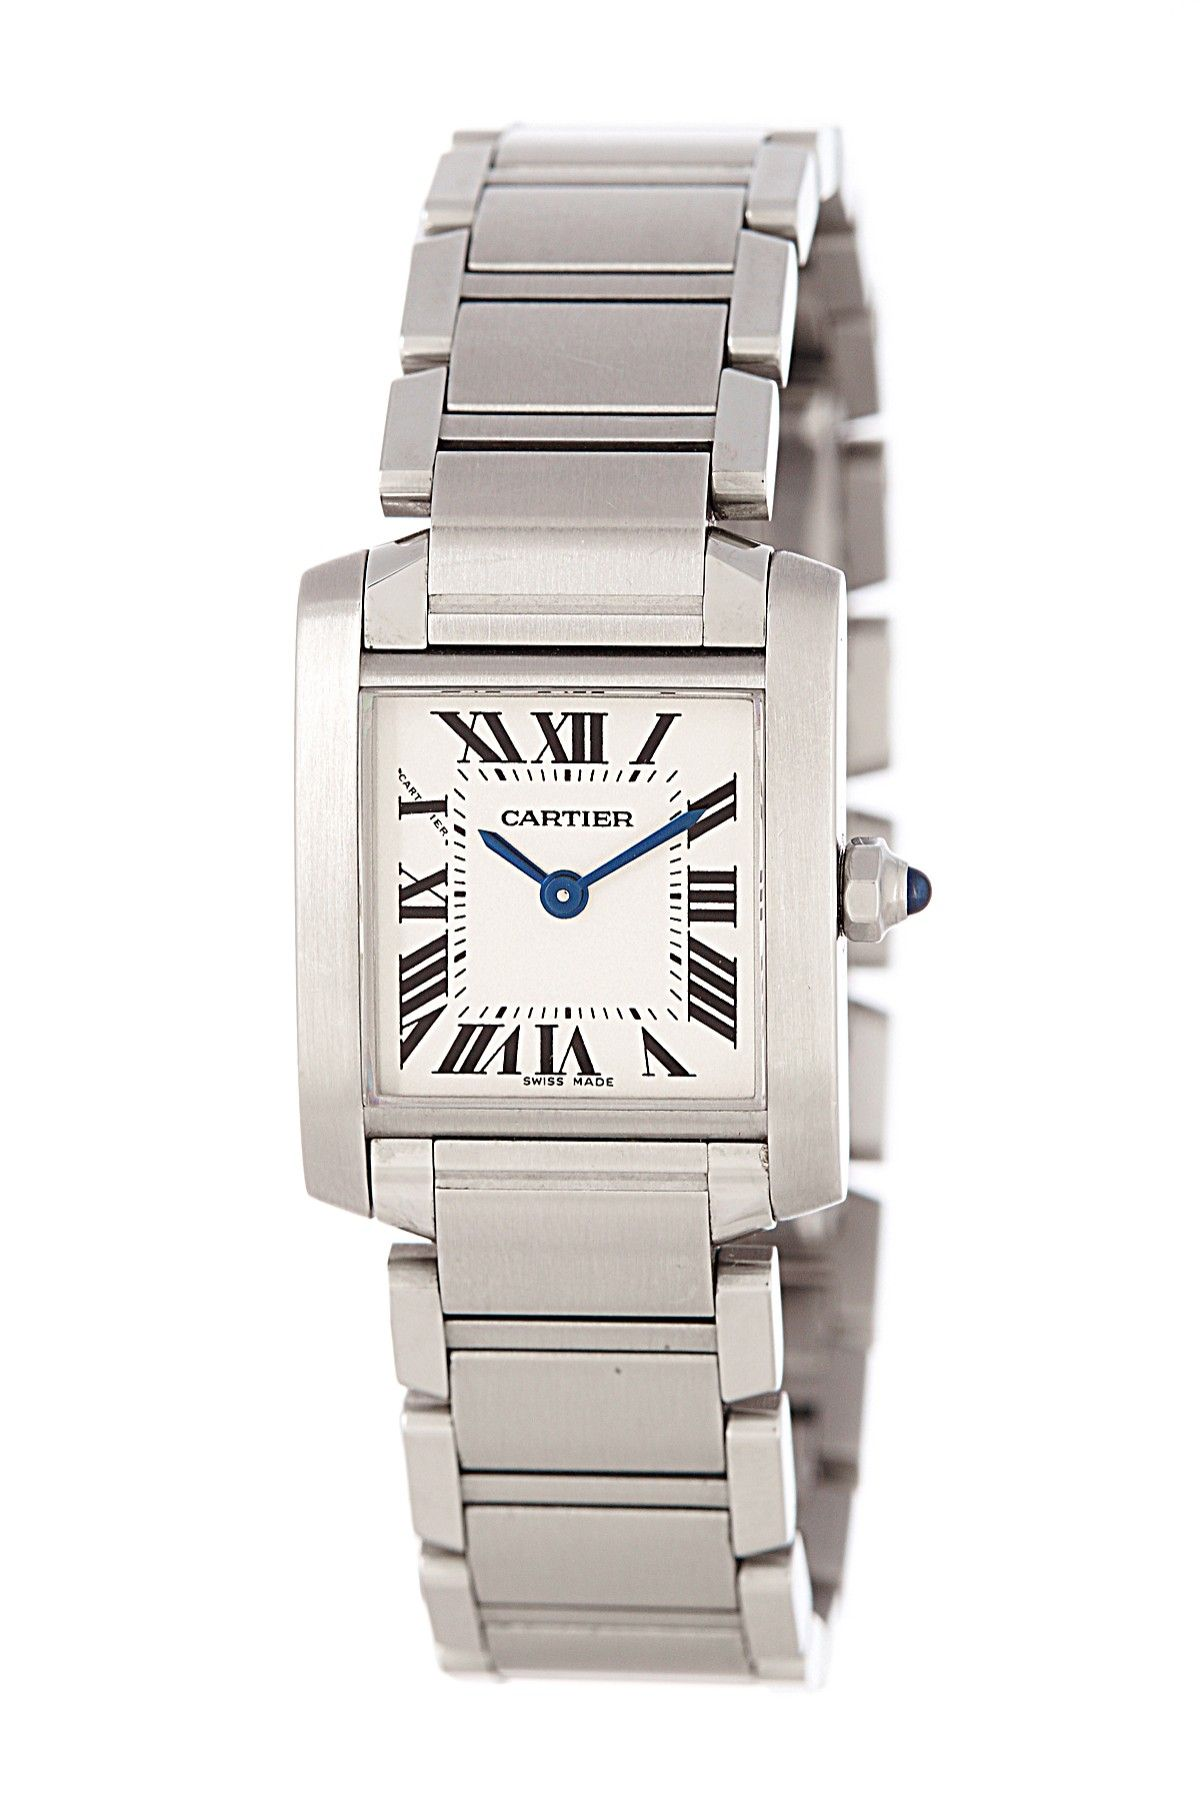 486127bd8725 Vintage Cartier Women s Tank Francaise Stainless Steel Watch